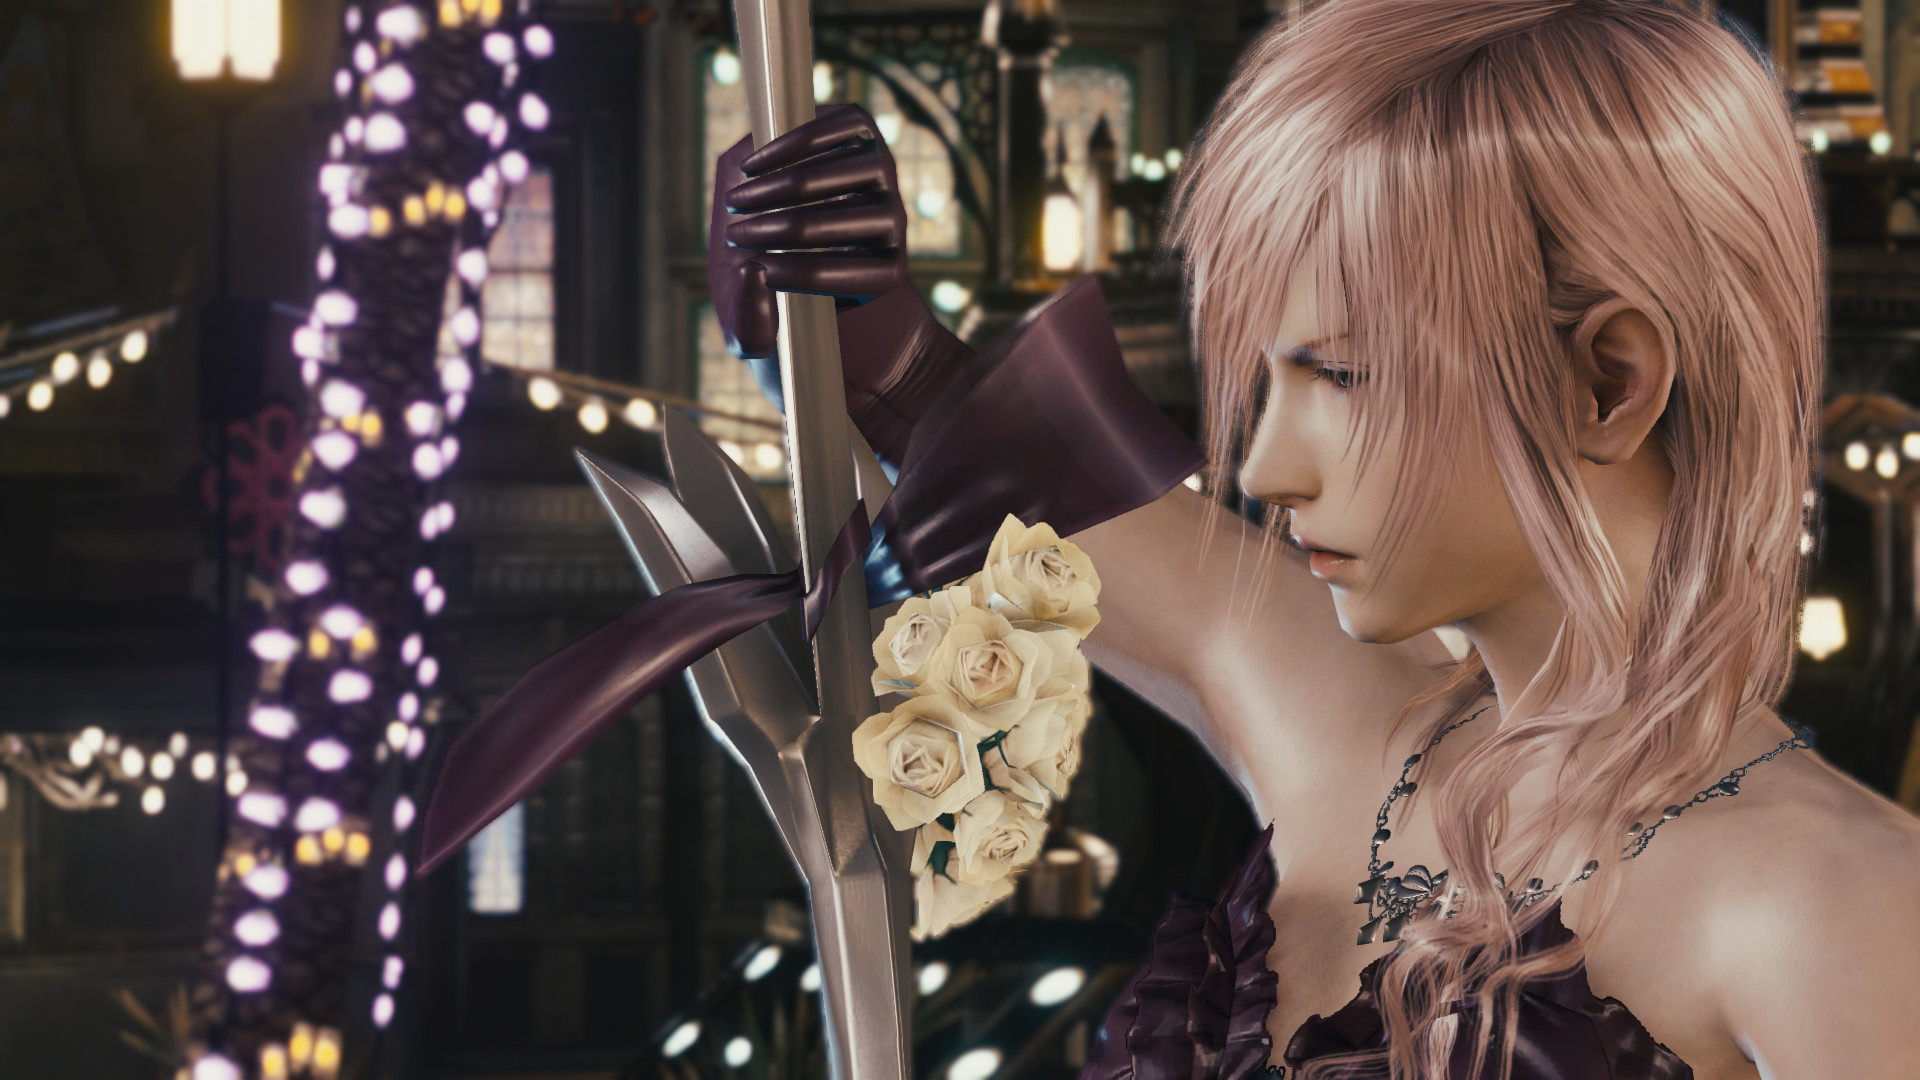 Lighting Returns: Final Fantasy XIII Steam Version Patched for Some Reason